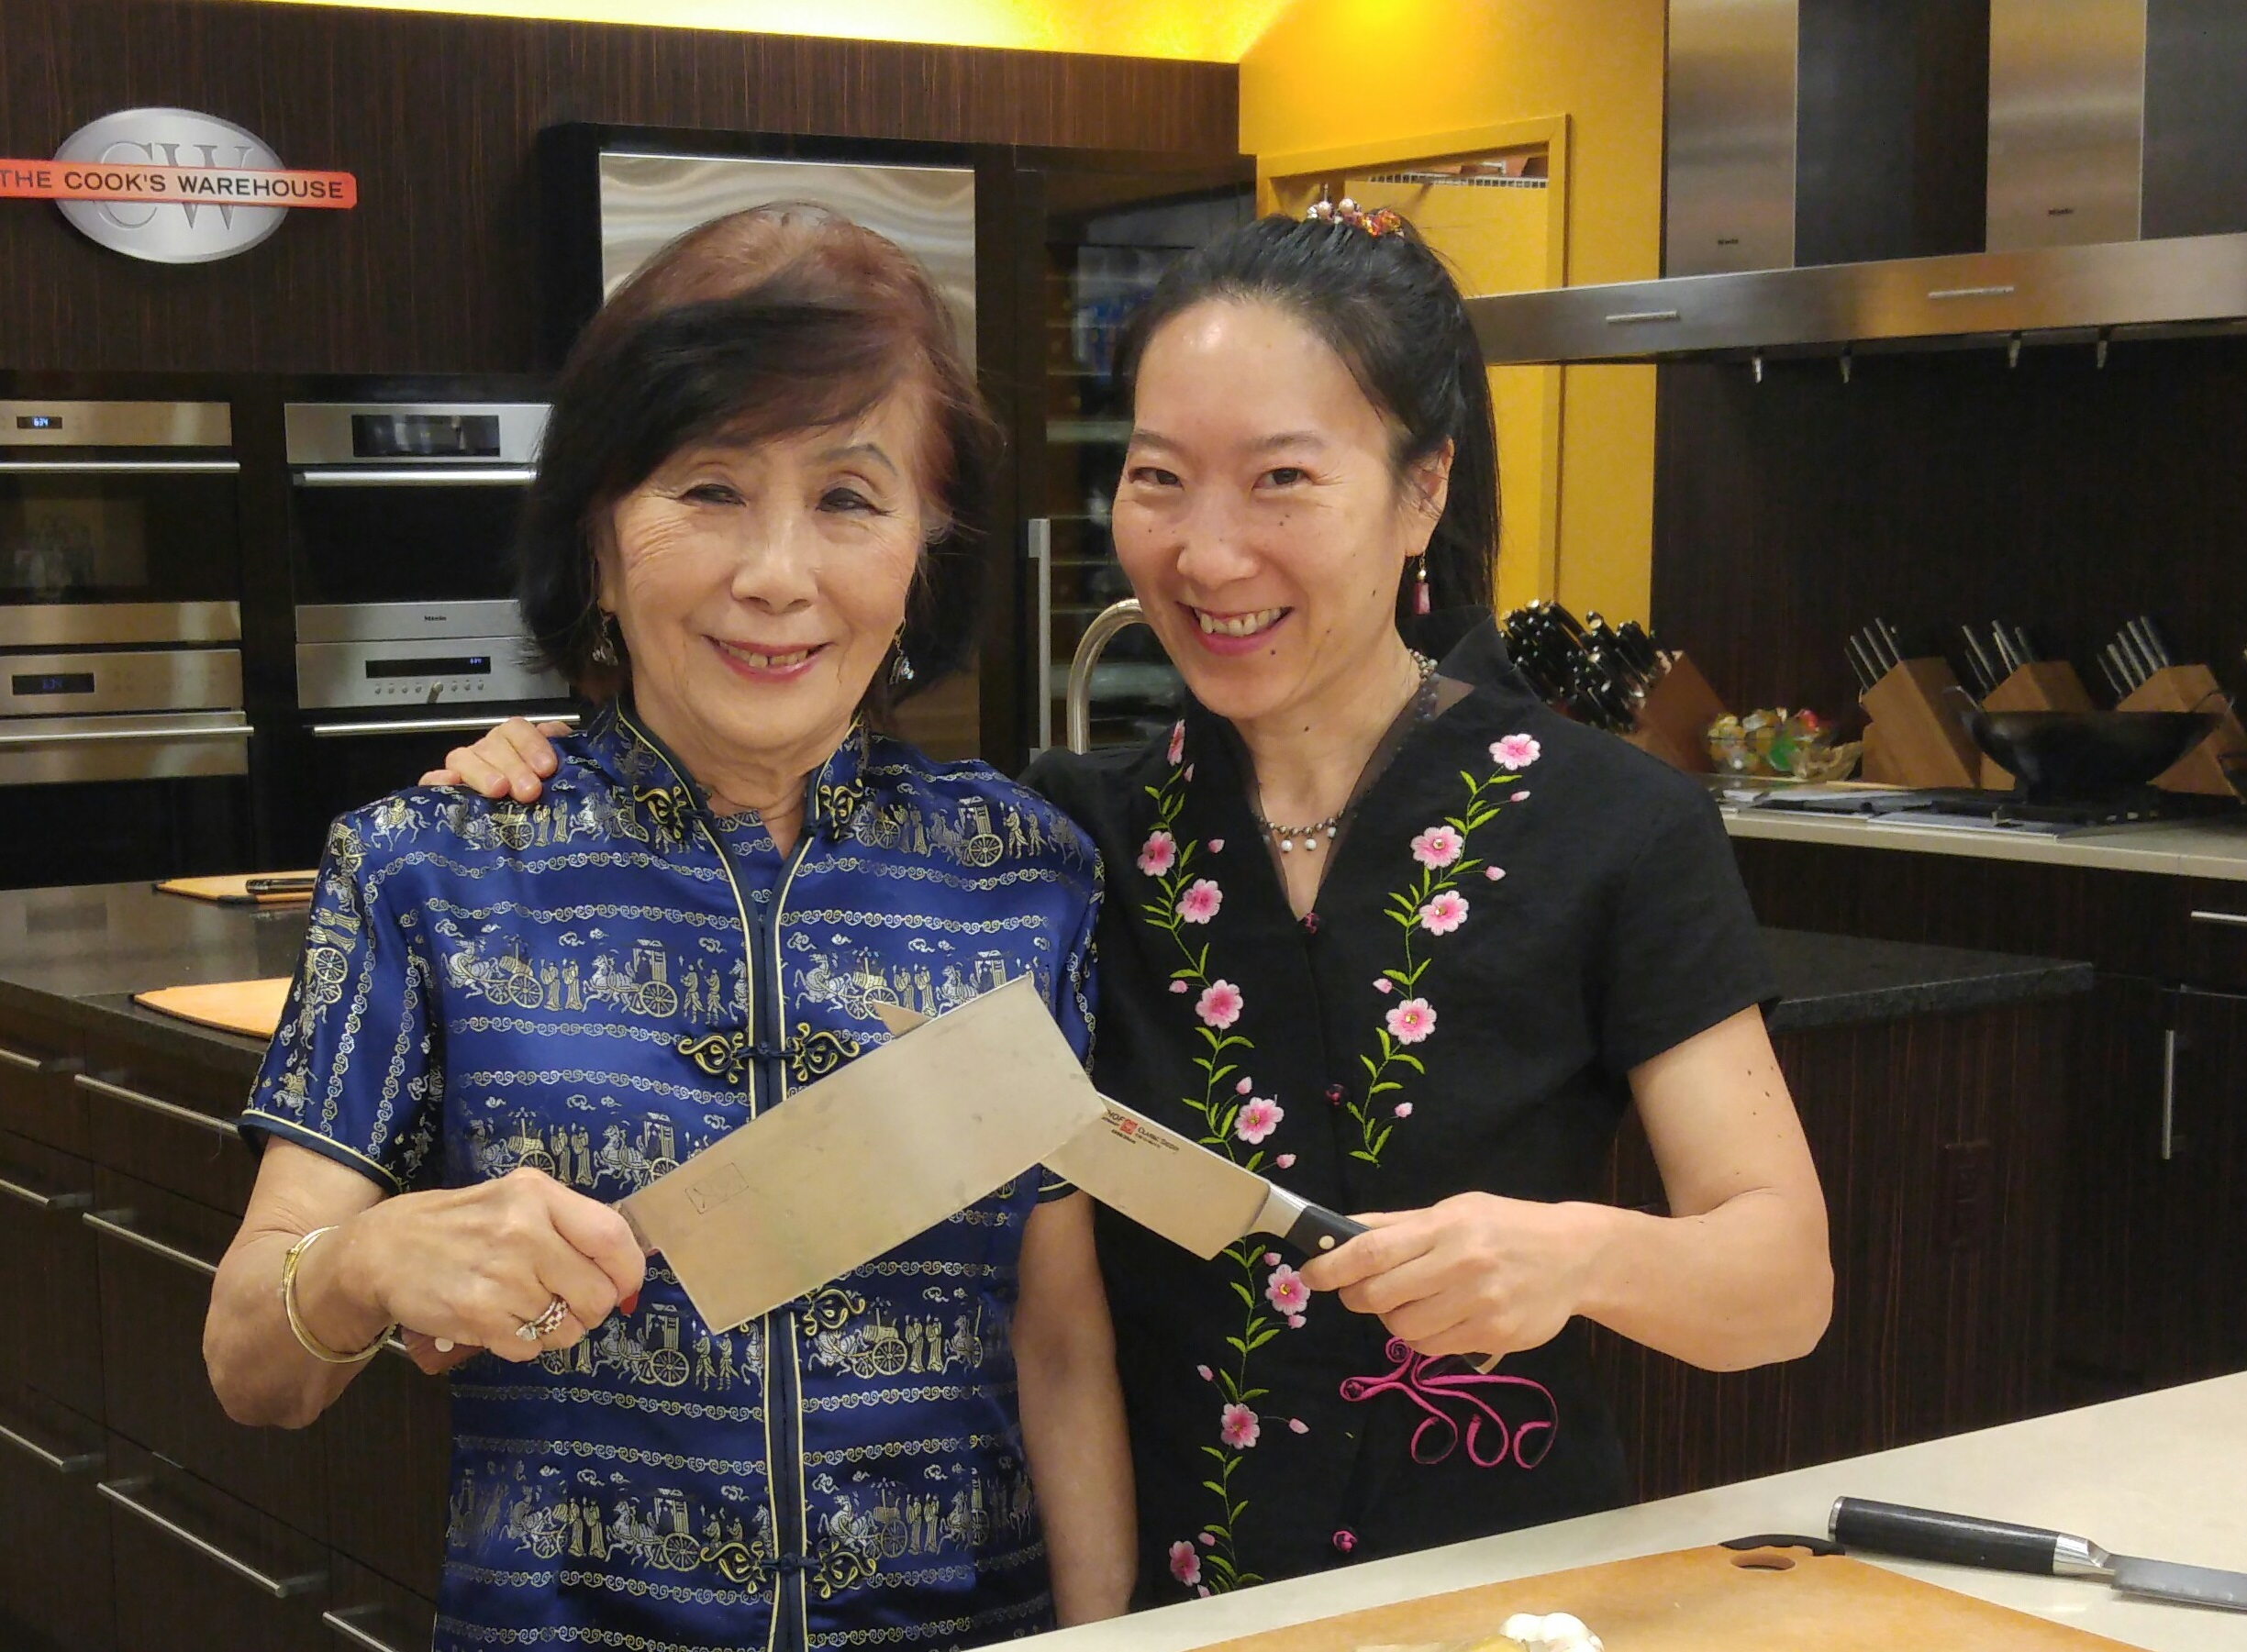 Media Interview: Intergenerational Businesses Unite Food, Family, Culture